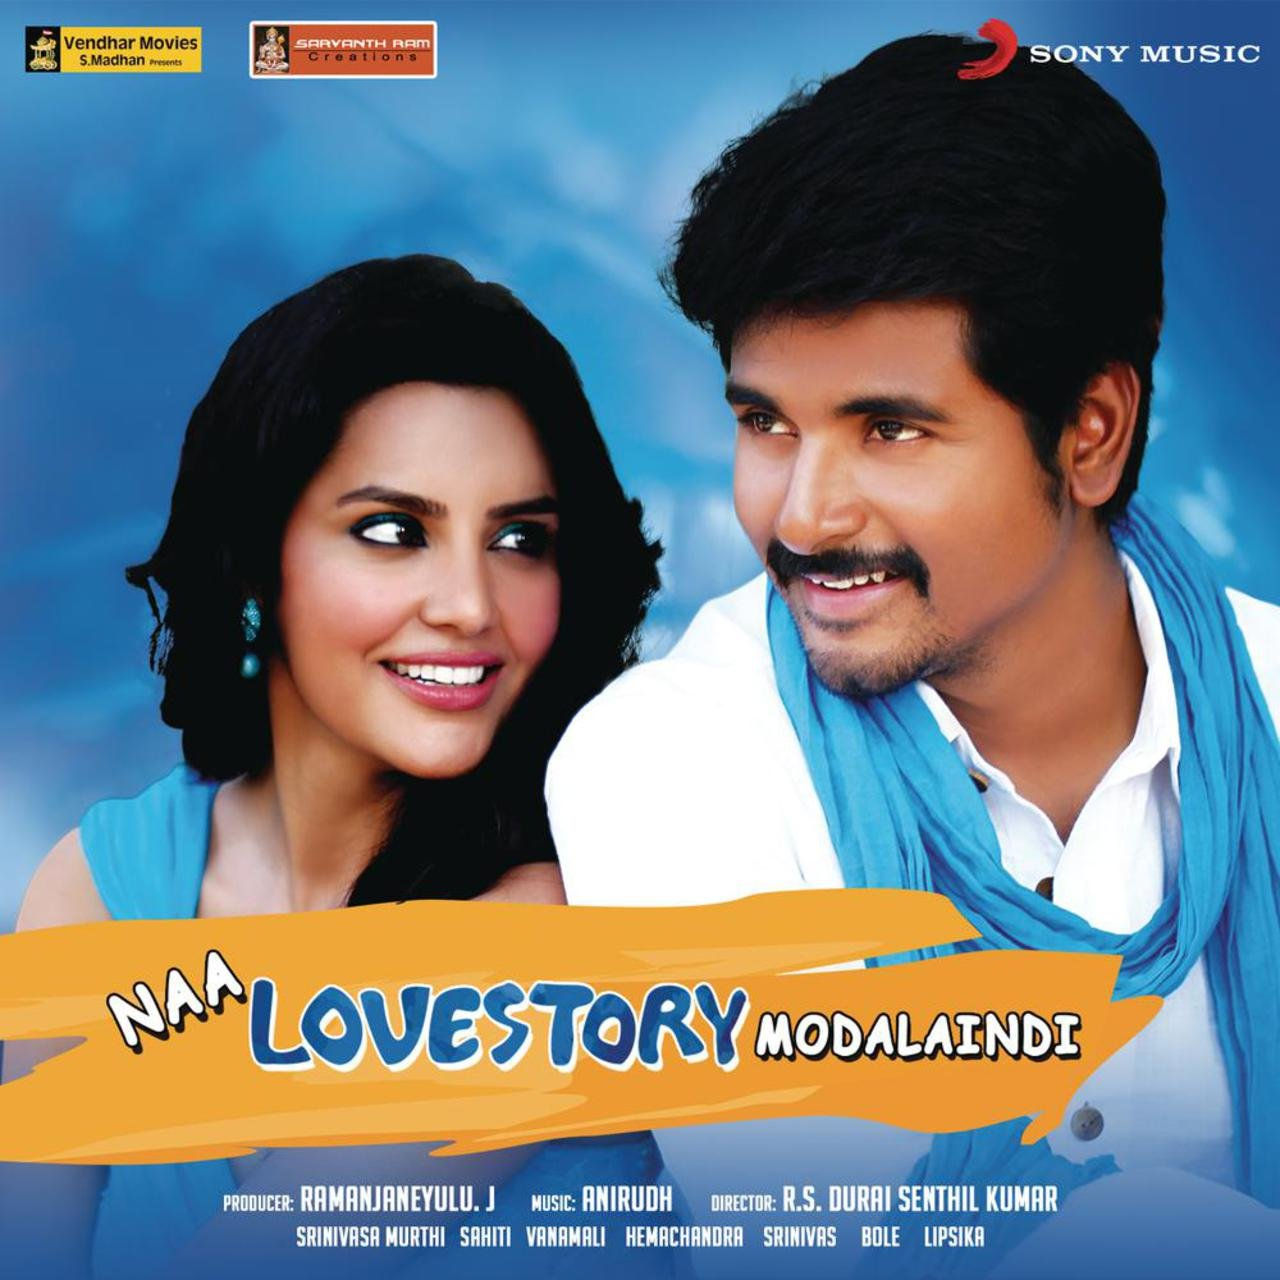 Tidal Listen To Naa Love Story Modalaindi Original Motion Picture